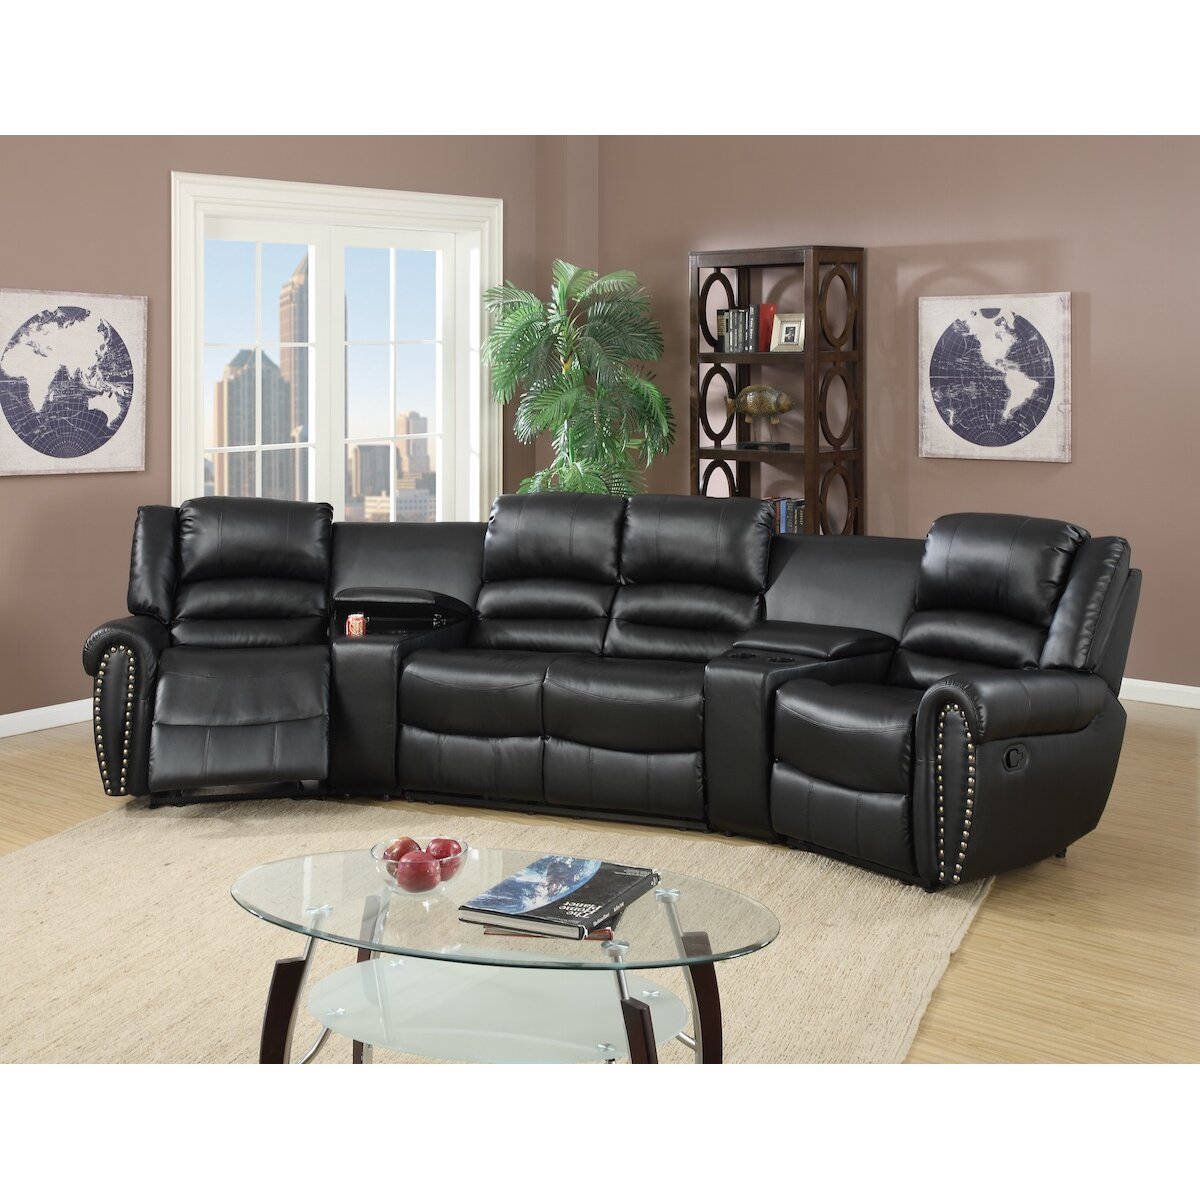 Sofa Bed Home Theater: Infini Furnishings Home Theater Sectional & Reviews